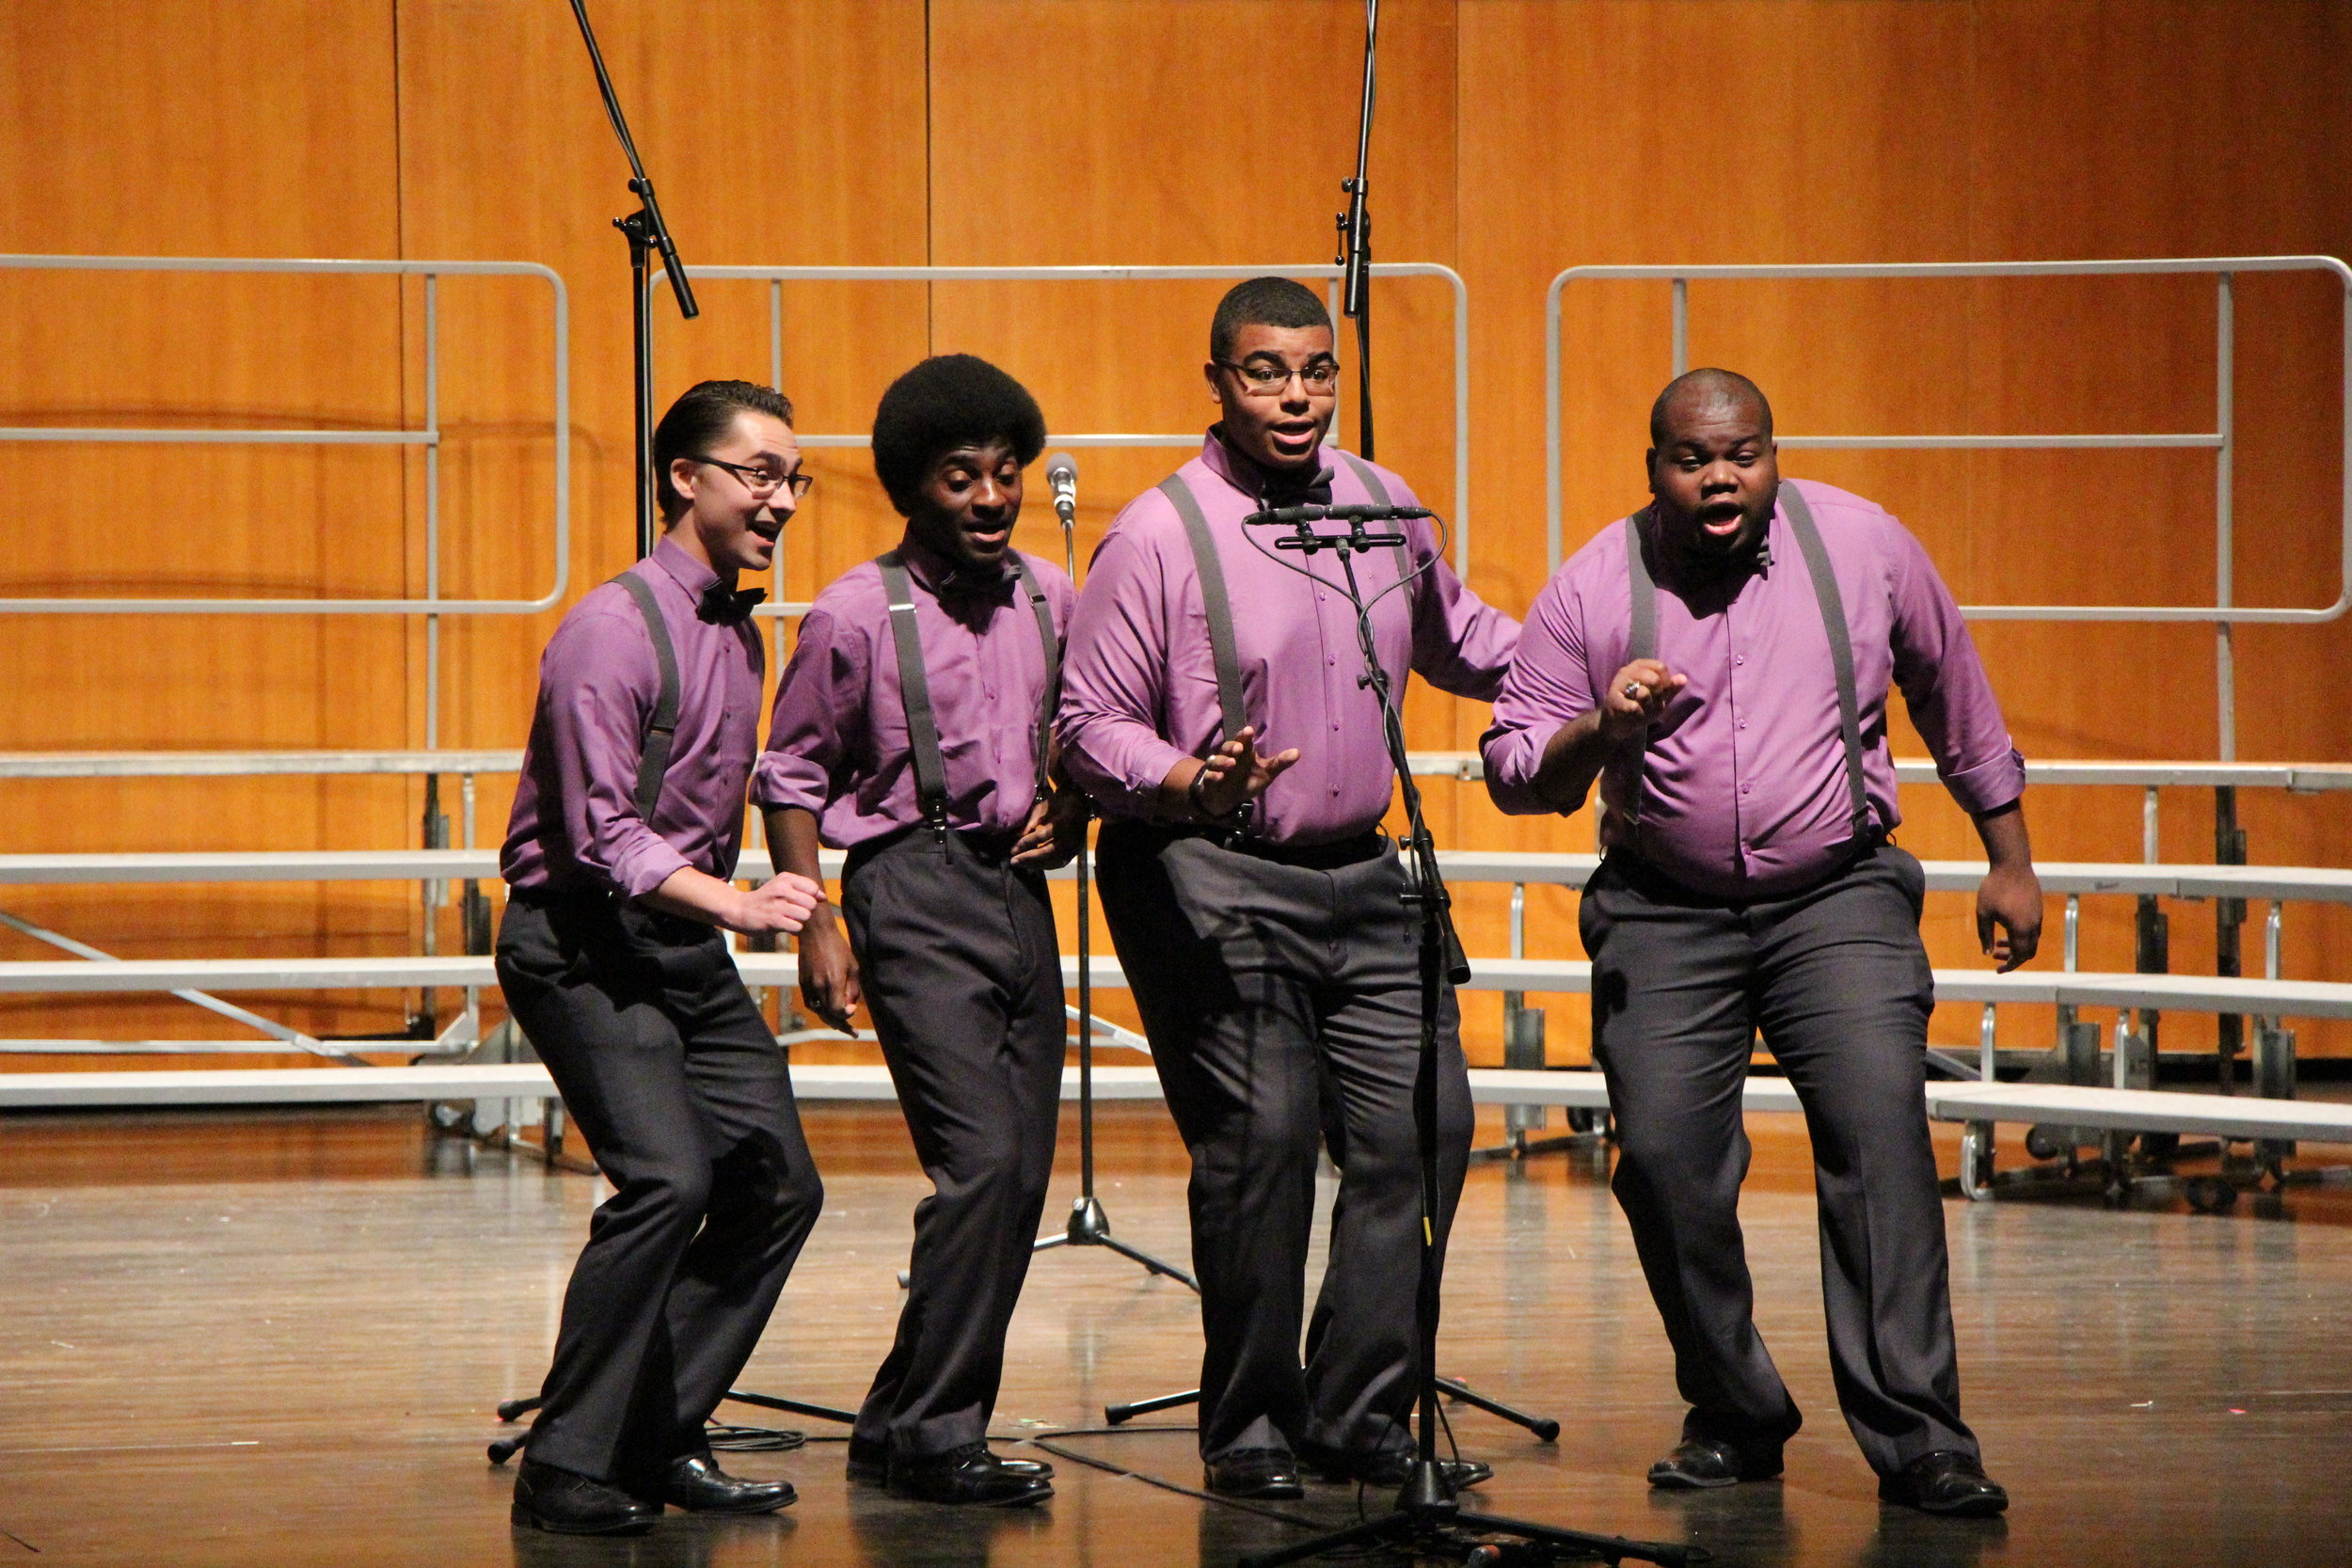 The Kingsmen, a young men's barbershop quartet, perform at the 2017 Fall Acappellooza session at the Touhill Performing Arts Center at the University of Missouri-St. Louis. From left to right are Austin Beck, Stephen Day, Alex Johnson and Ransford Tulloch. Photo by Dave Revelle